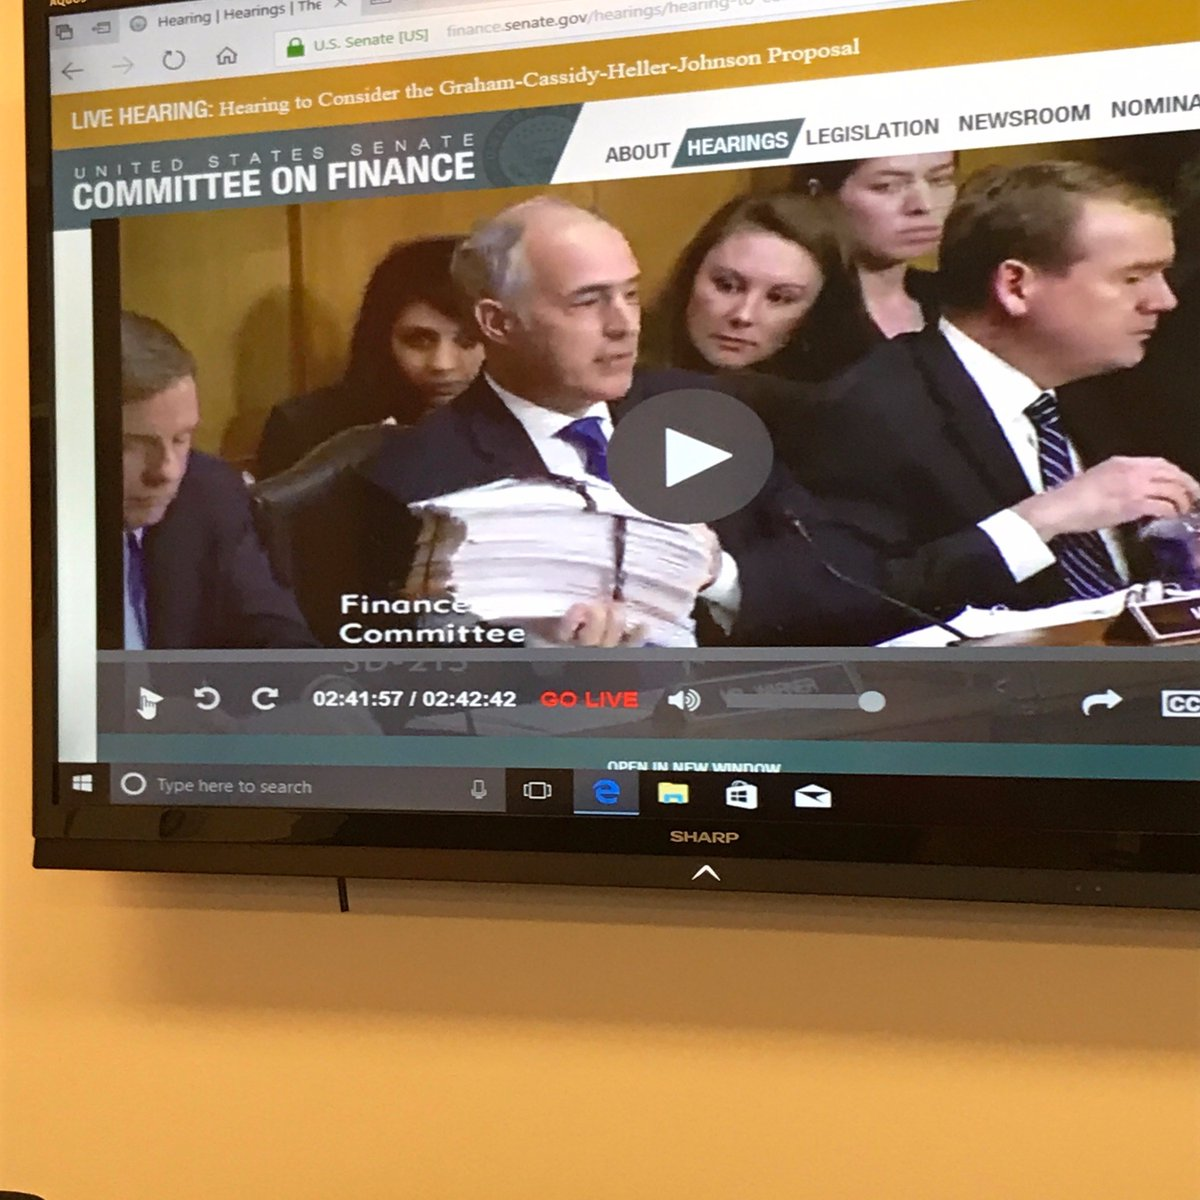 Thank you for the shout out @SenBobCasey &amp; for all of your advocacy on behalf of #PwD! #GrahamCassidy #SaveMedicaid #ProtectOurCare<br>http://pic.twitter.com/Zlp34bA1dY